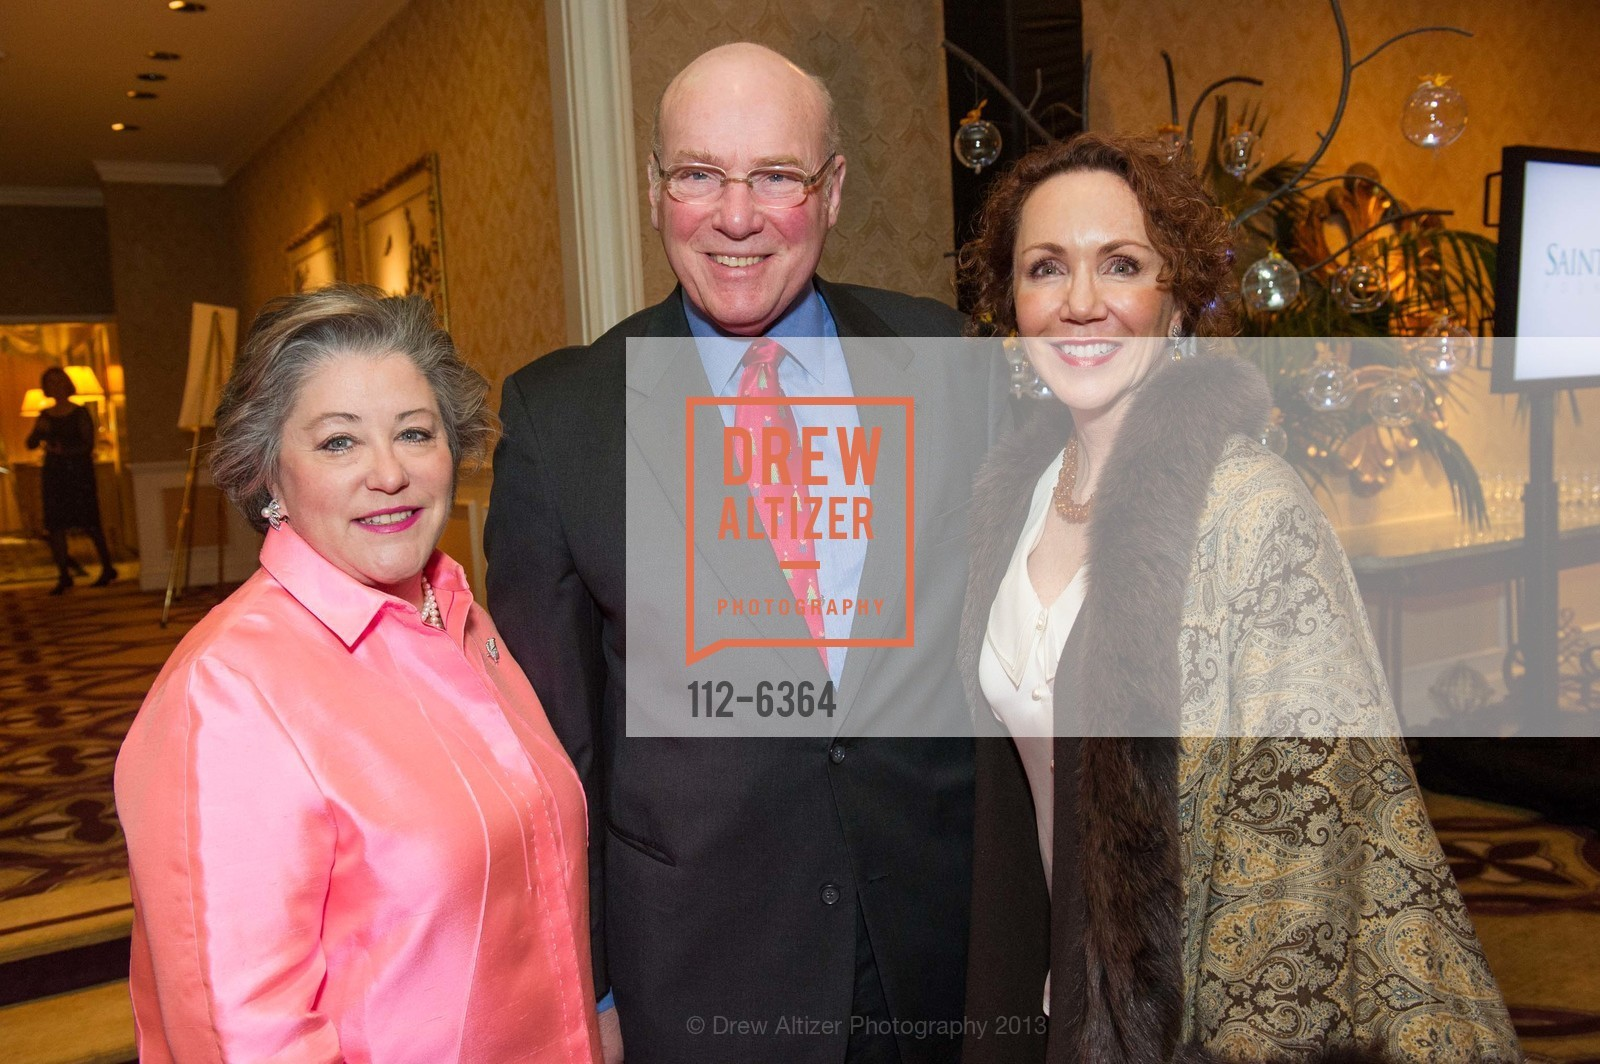 Susan Gearey, Steve van Pelt, Suzanne Muntzing, 25th Anniversary Holiday HOB NOB ON THE HILL, US, December 6th, 2013,Drew Altizer, Drew Altizer Photography, full-service agency, private events, San Francisco photographer, photographer california